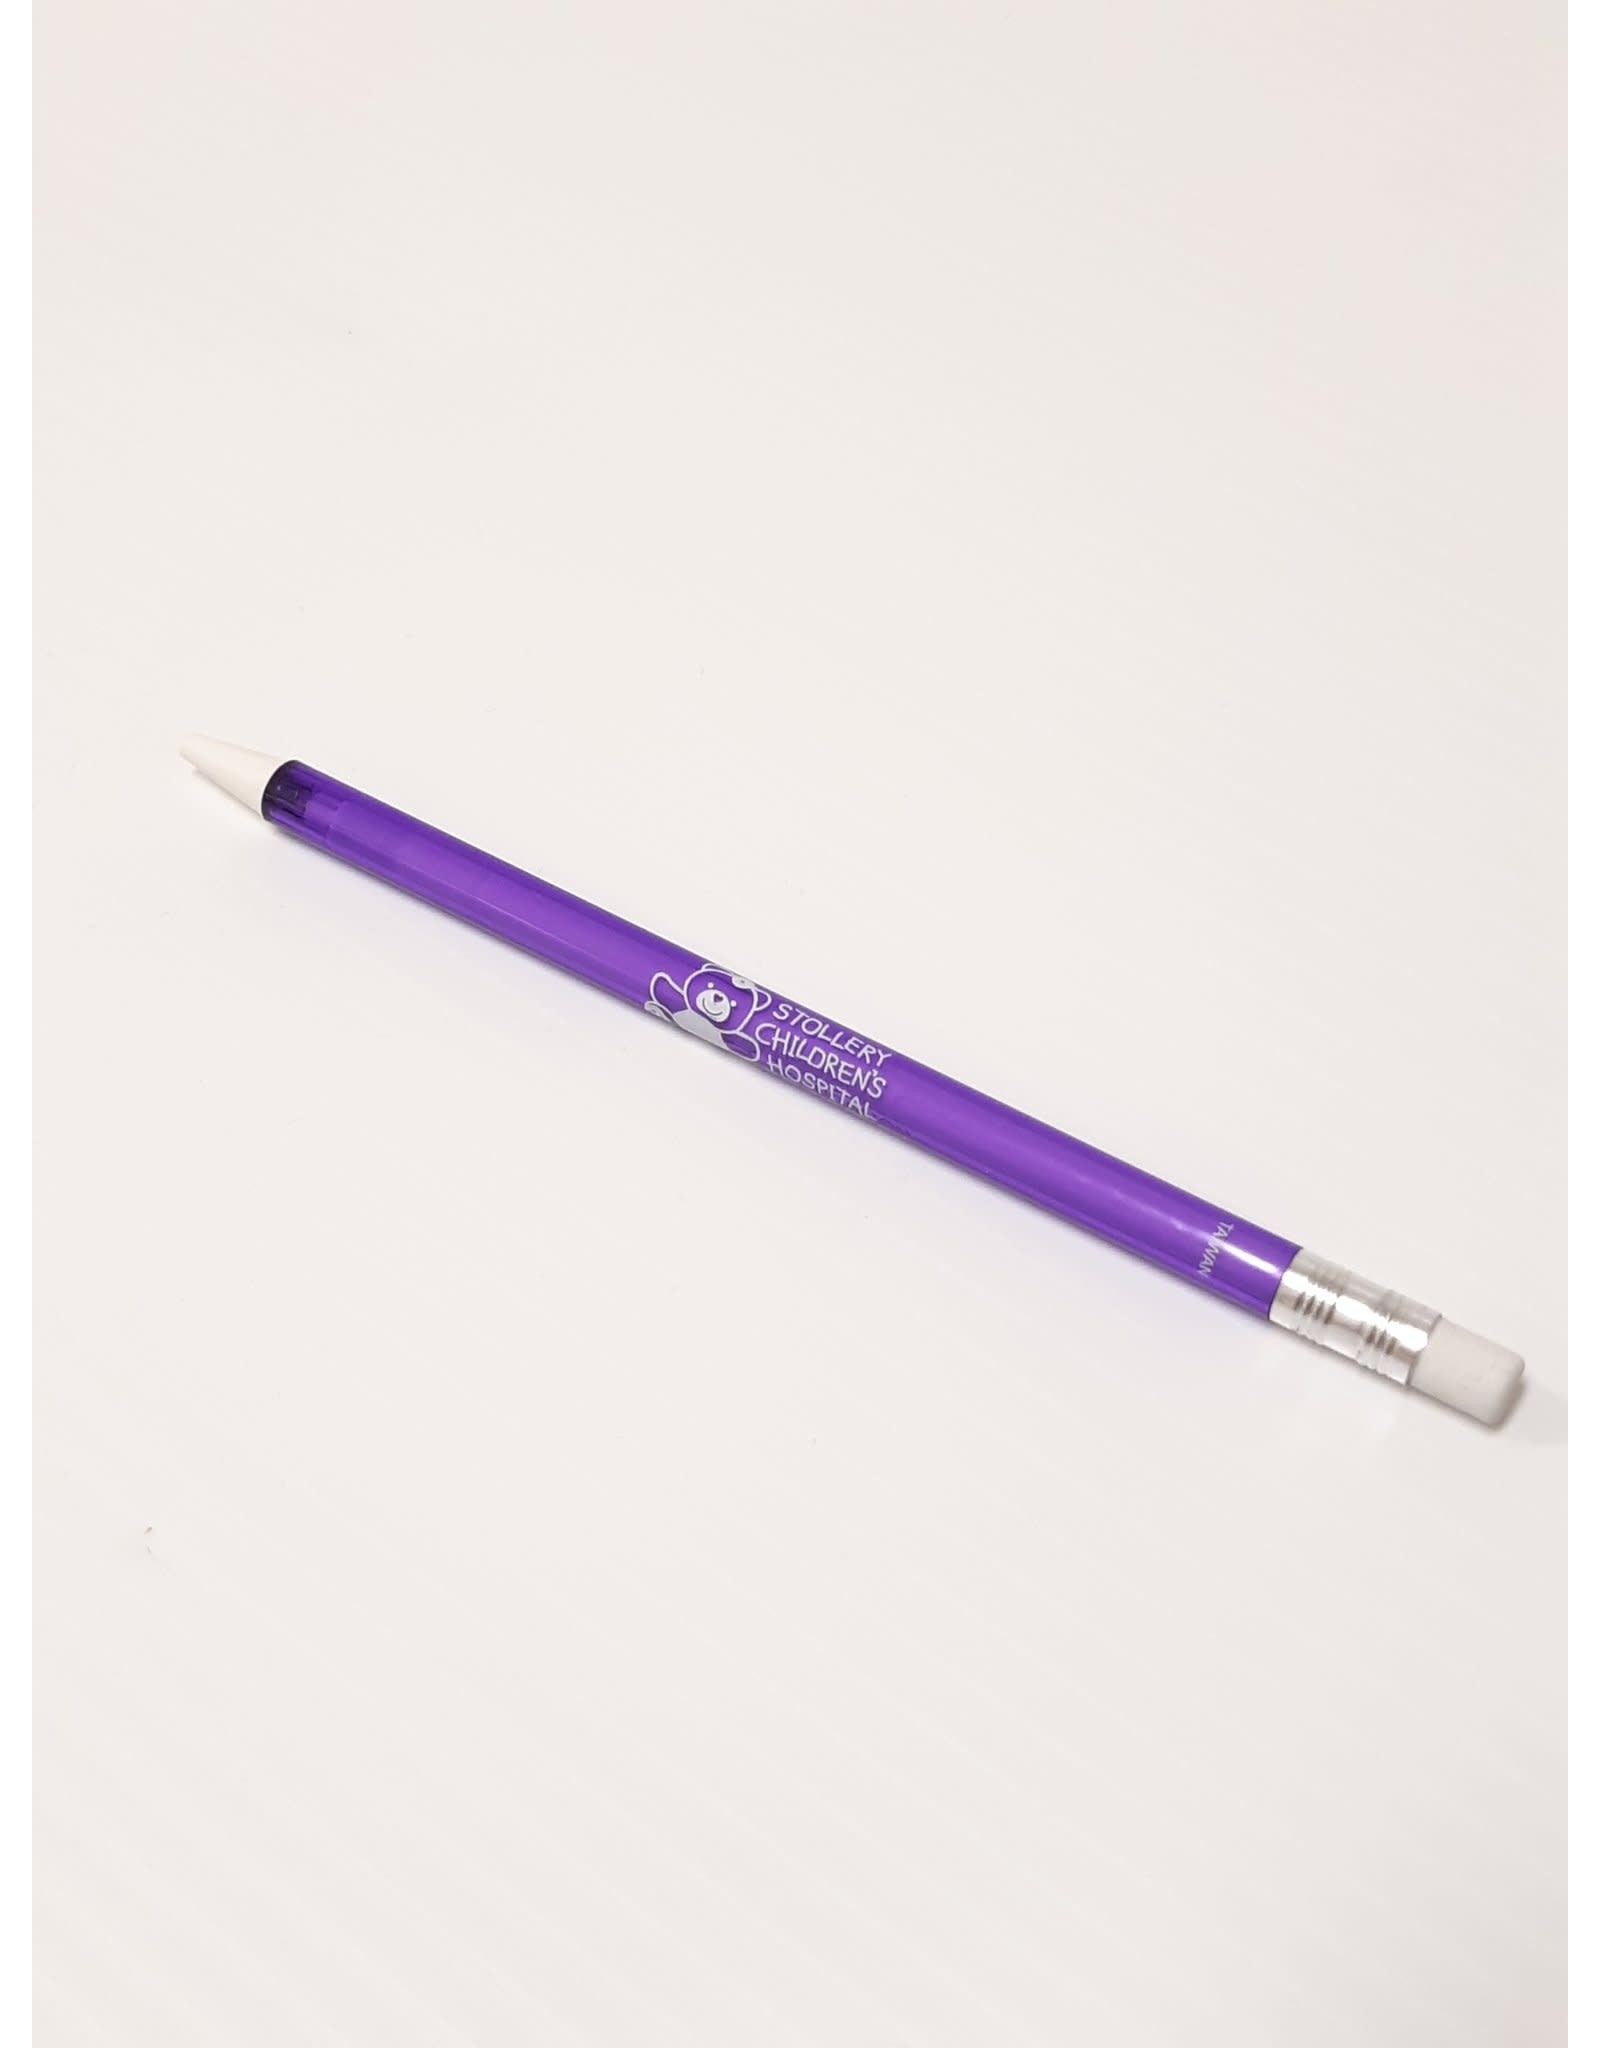 Stollery Pencil Mechanical